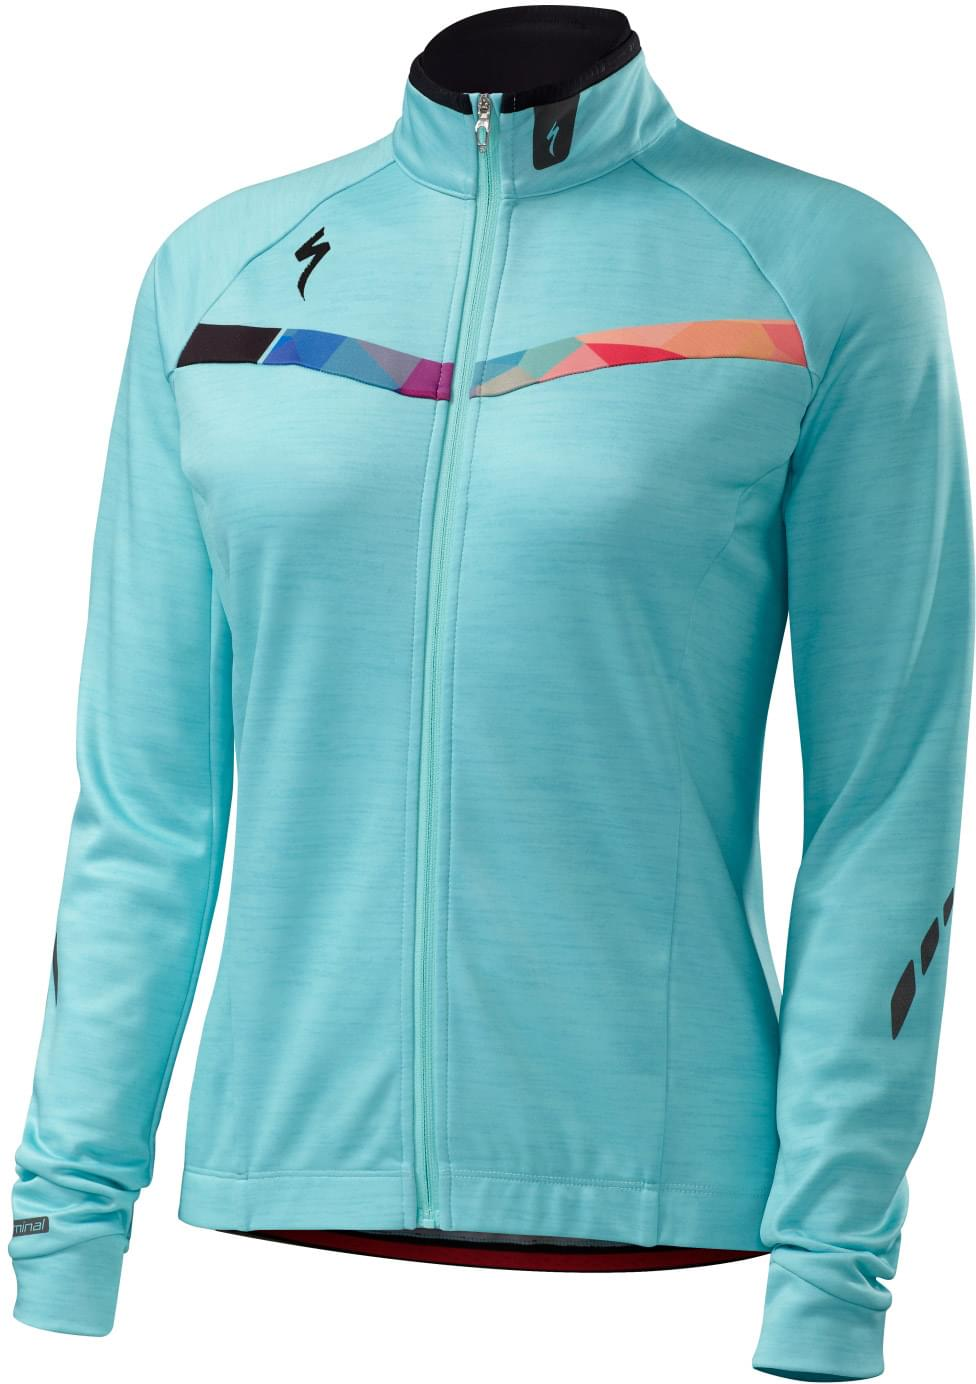 Specialized Therminal Long Sleeve Jersey Wmn - turquoise geo XS